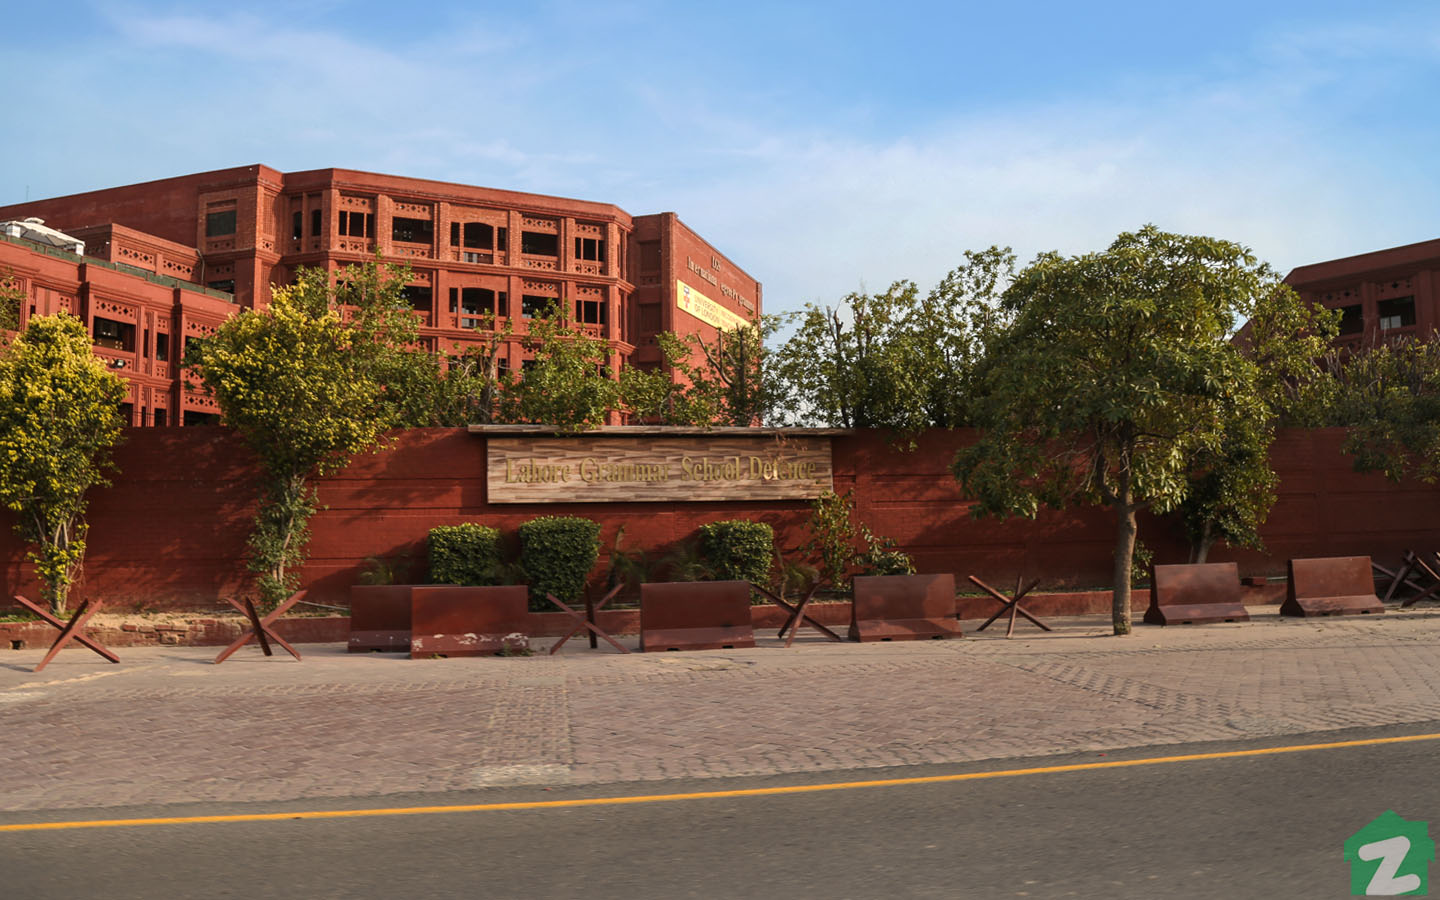 Lahore Grammar School is sited in Phase 5, DHA